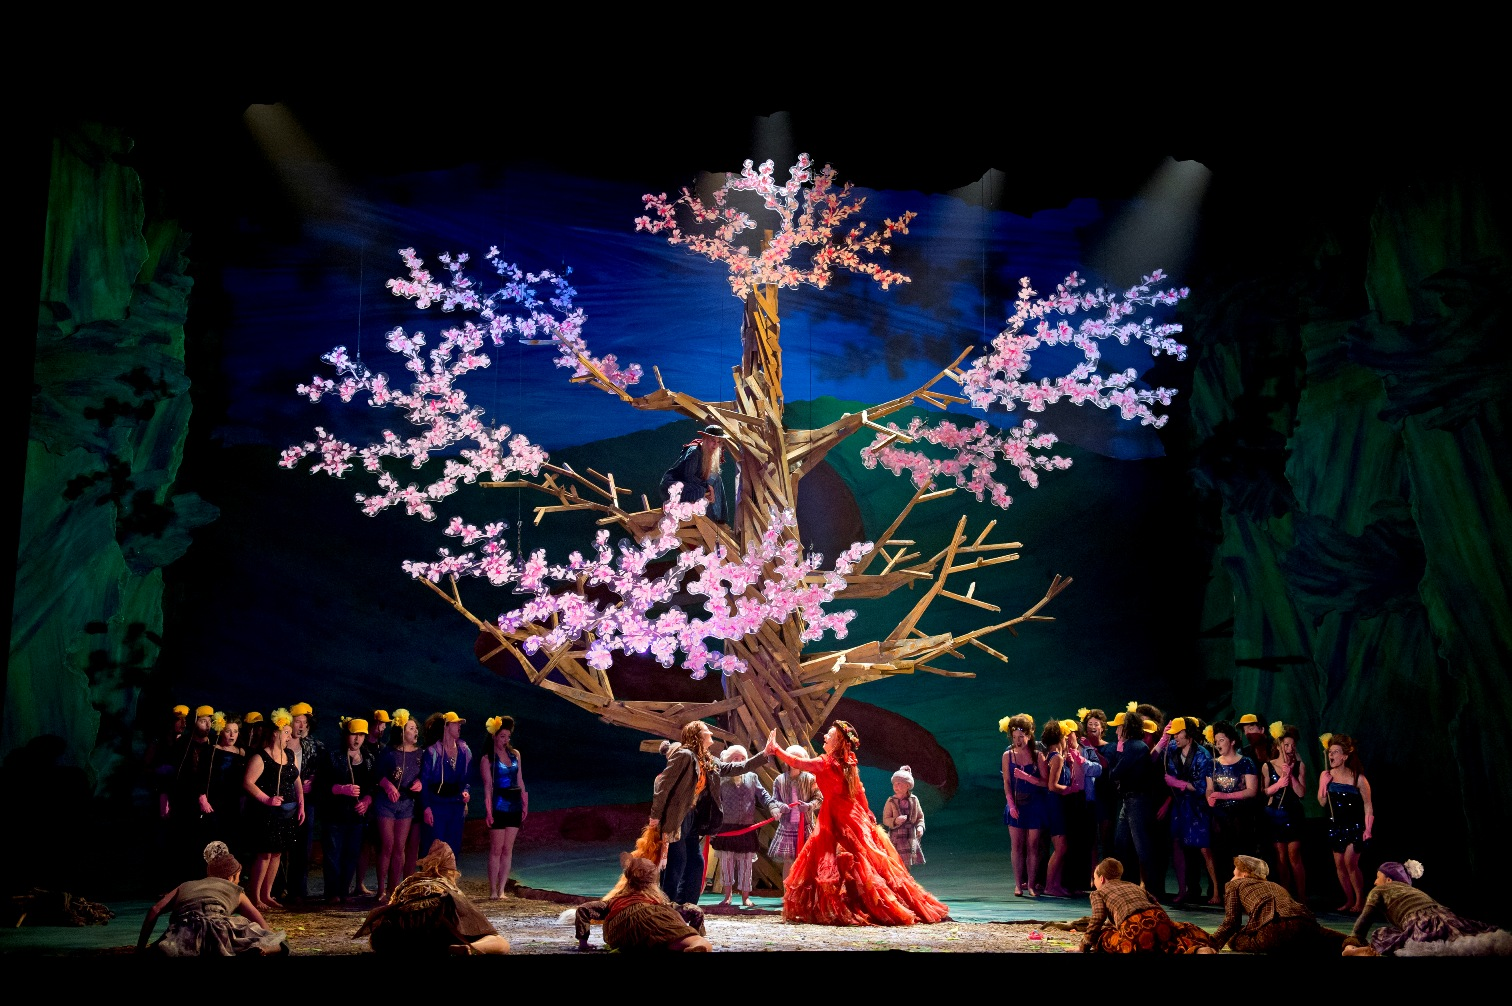 The wedding scene in the Glyndebourne production of The Cunning Little Vixen